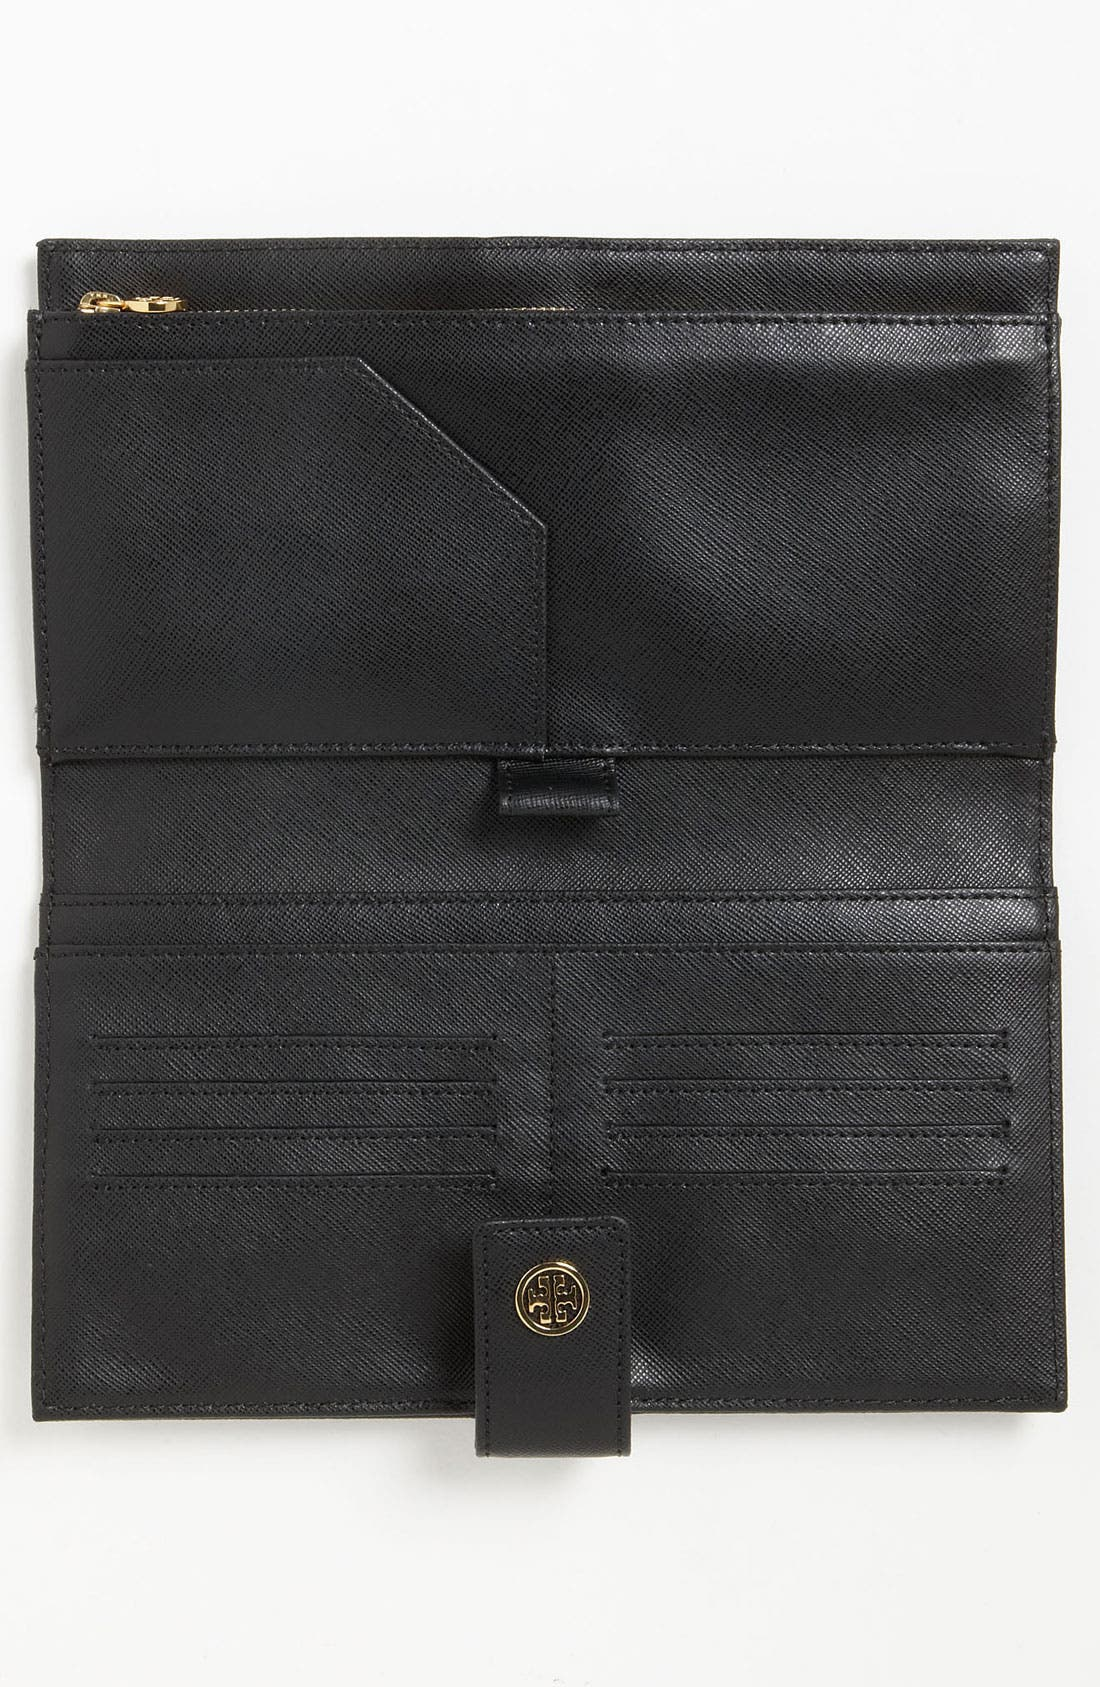 TORY BURCH,                             'Robinson' Oversized Travel Wallet,                             Alternate thumbnail 2, color,                             001